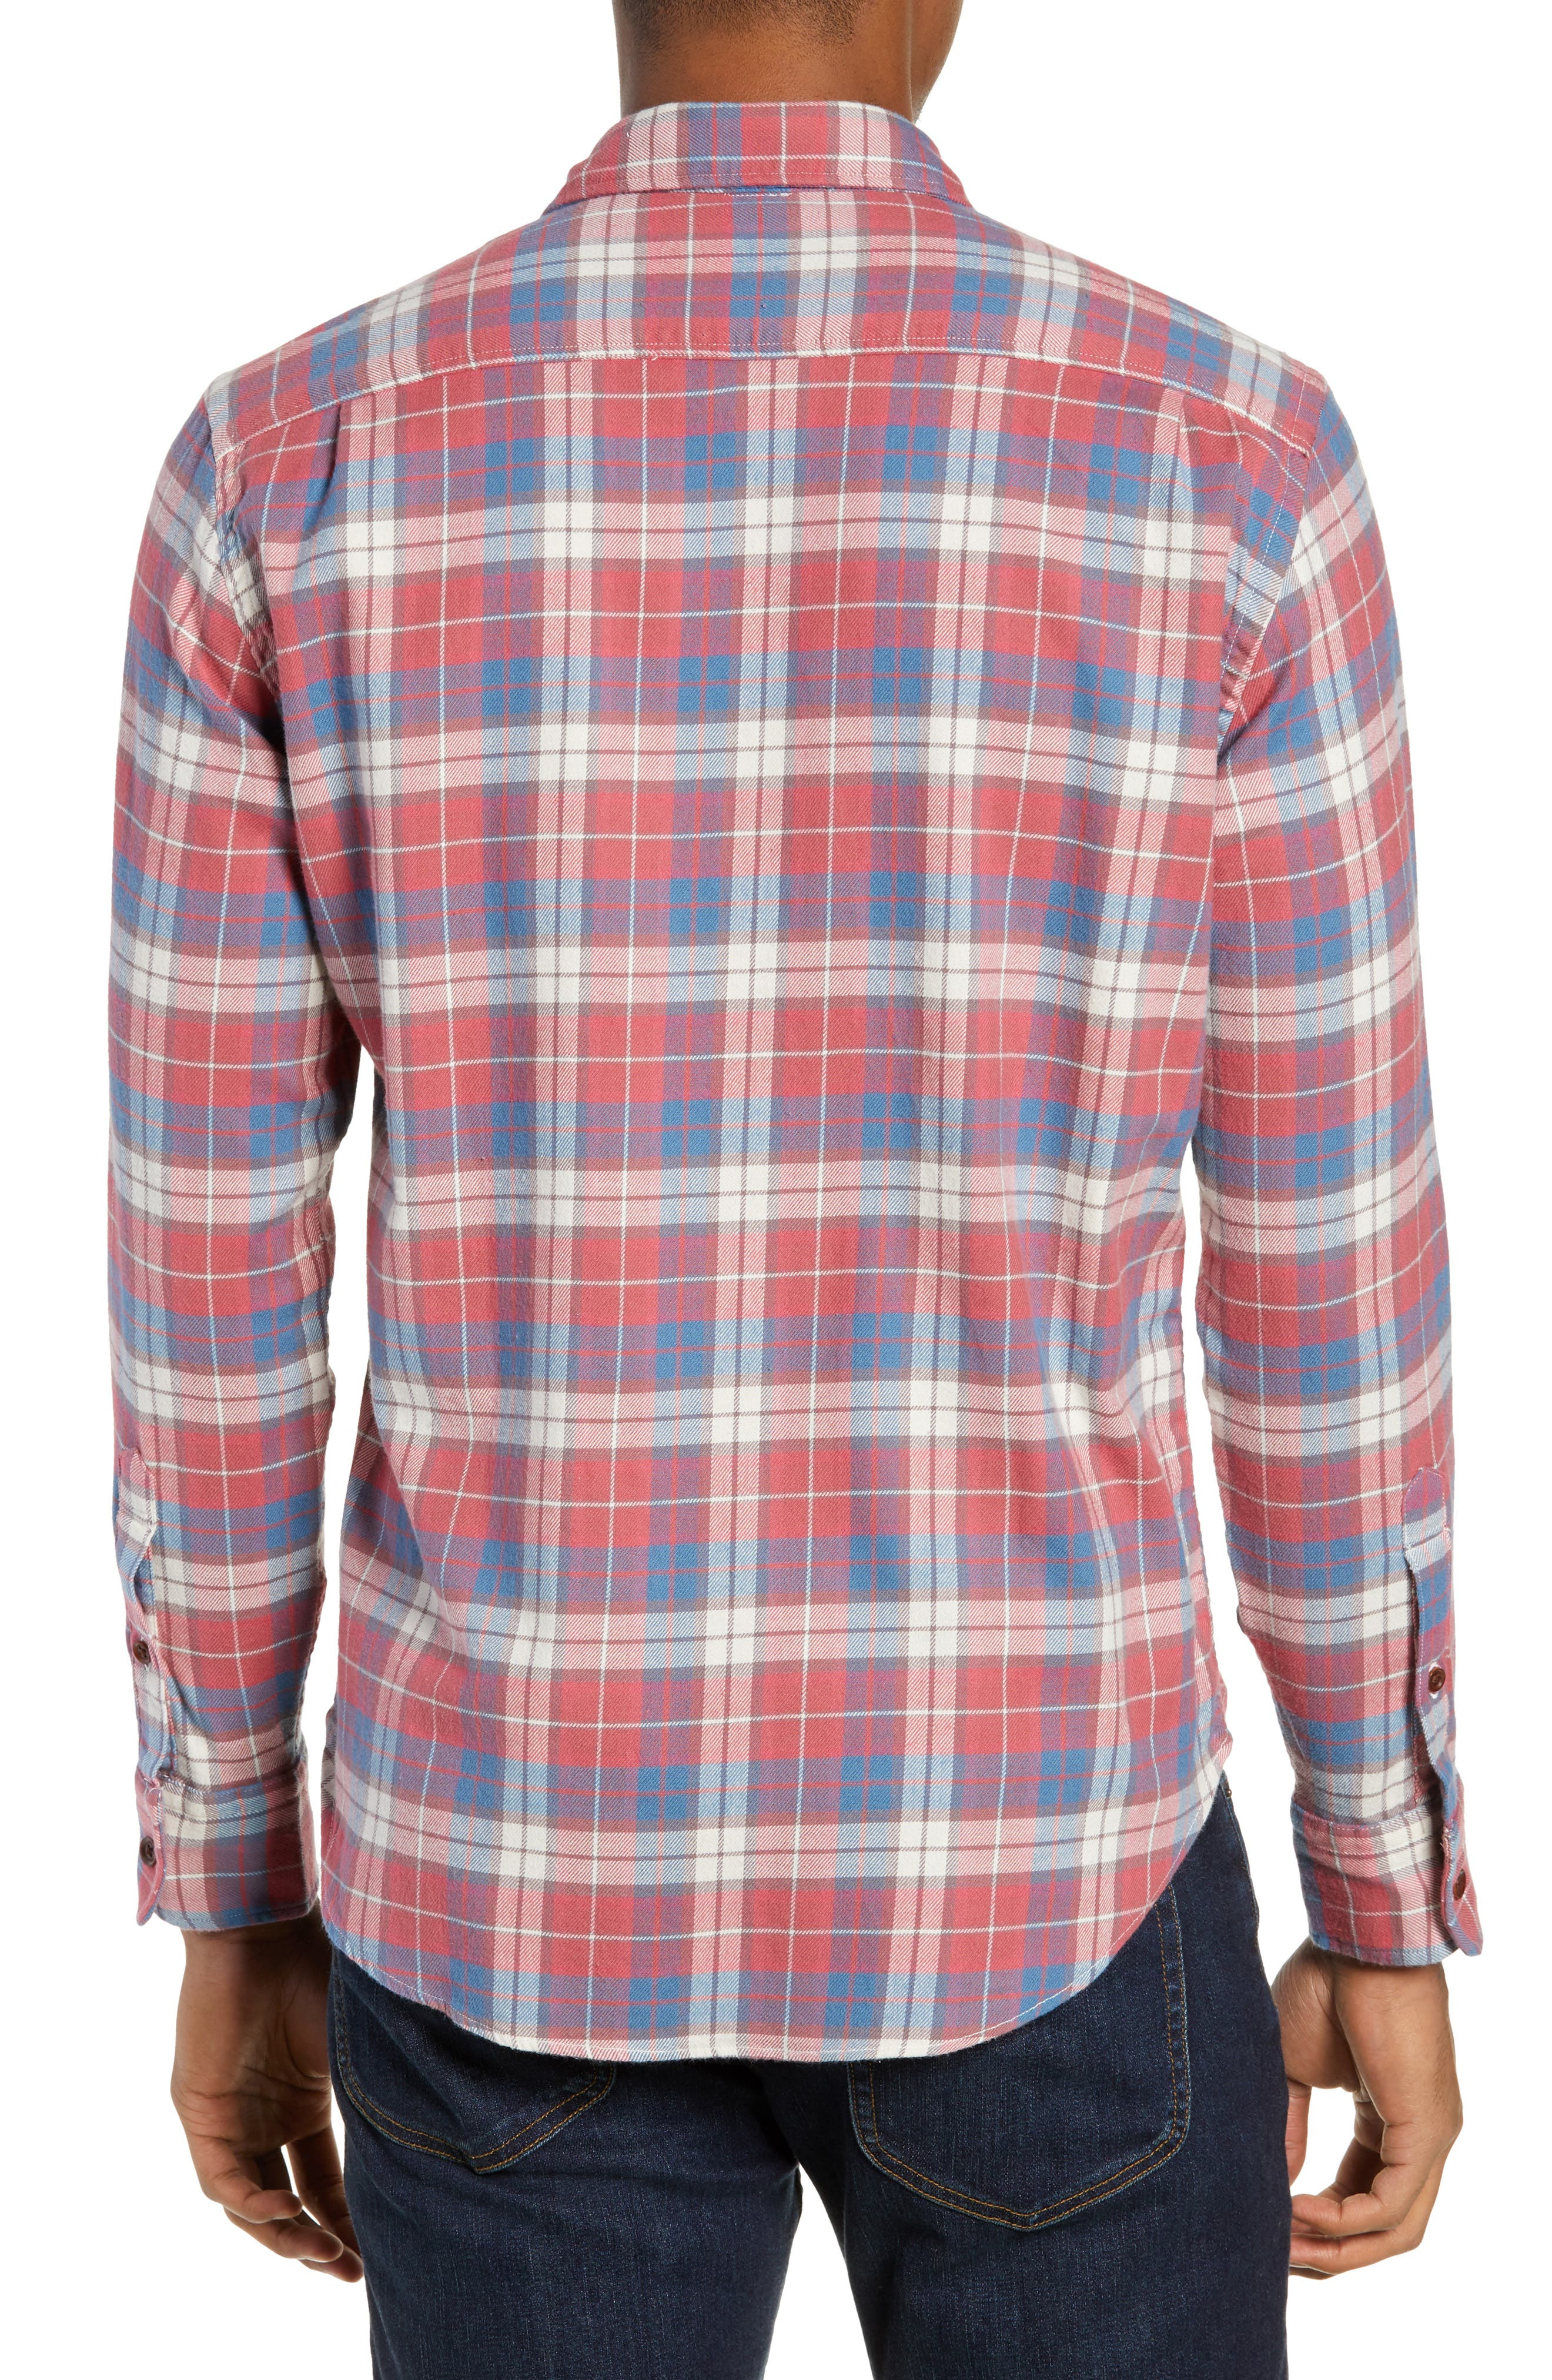 Seaview Stretch Flannel Shirt,                             Alternate thumbnail 3, color,                             RED HORIZON BLUE